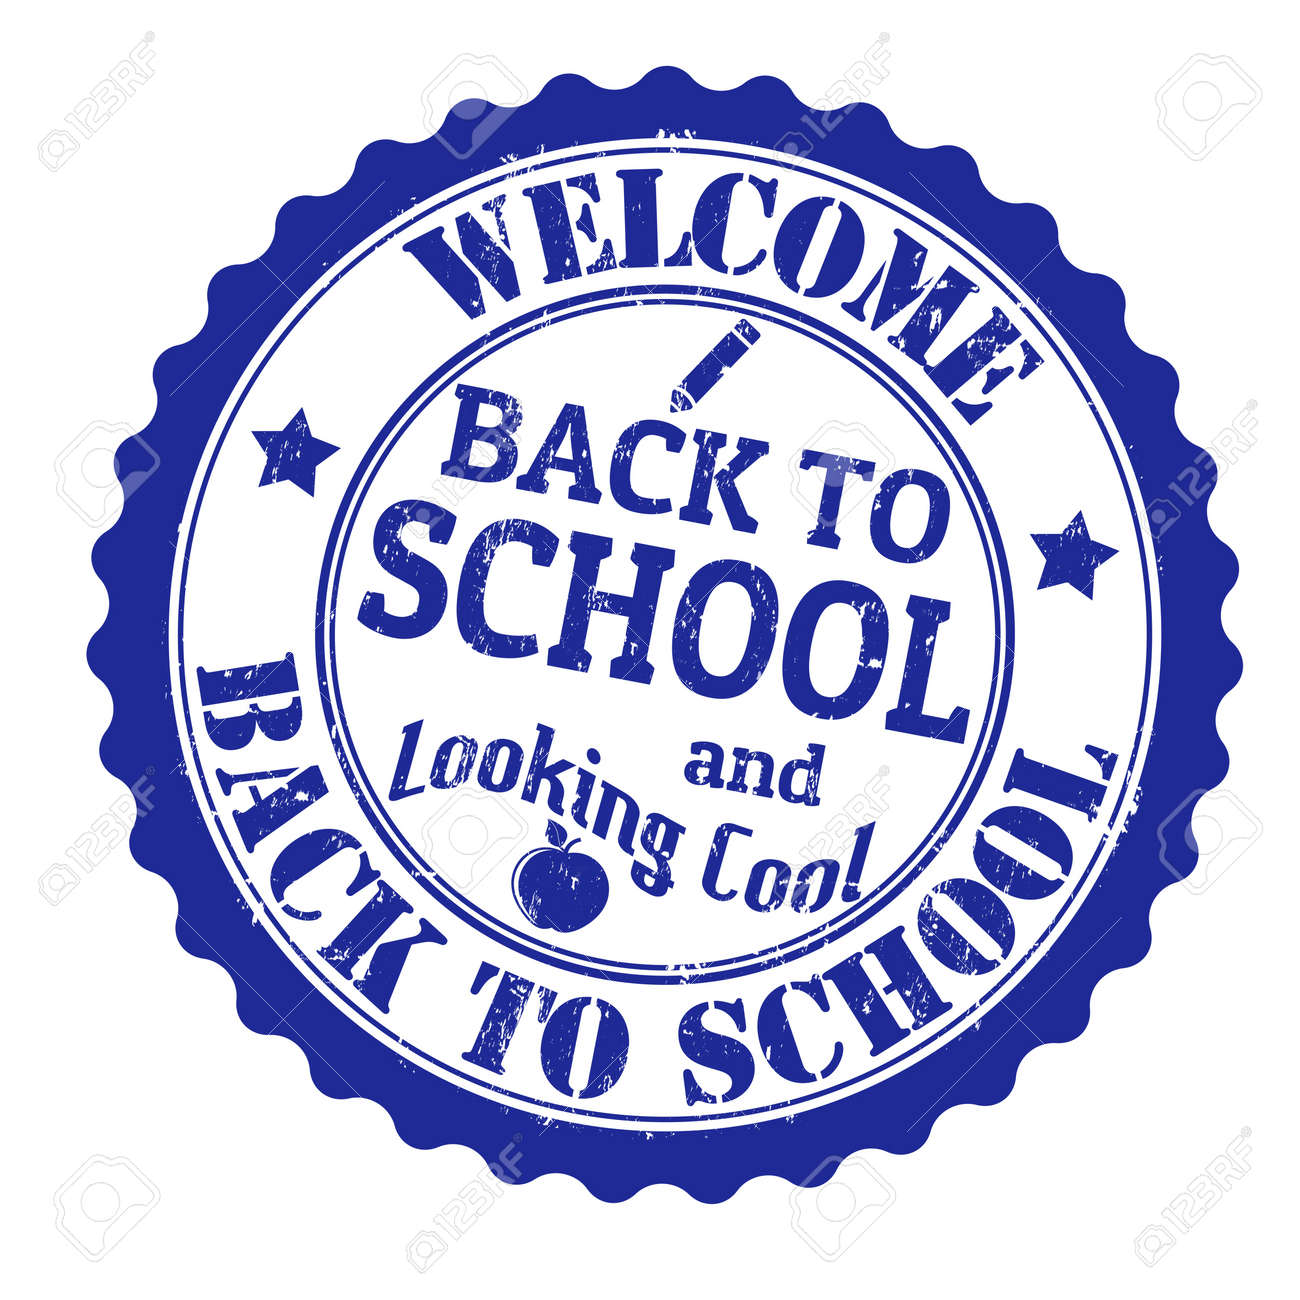 Back to school grunge rubber stamp on white background, vector illustration Stock Vector - 21313950